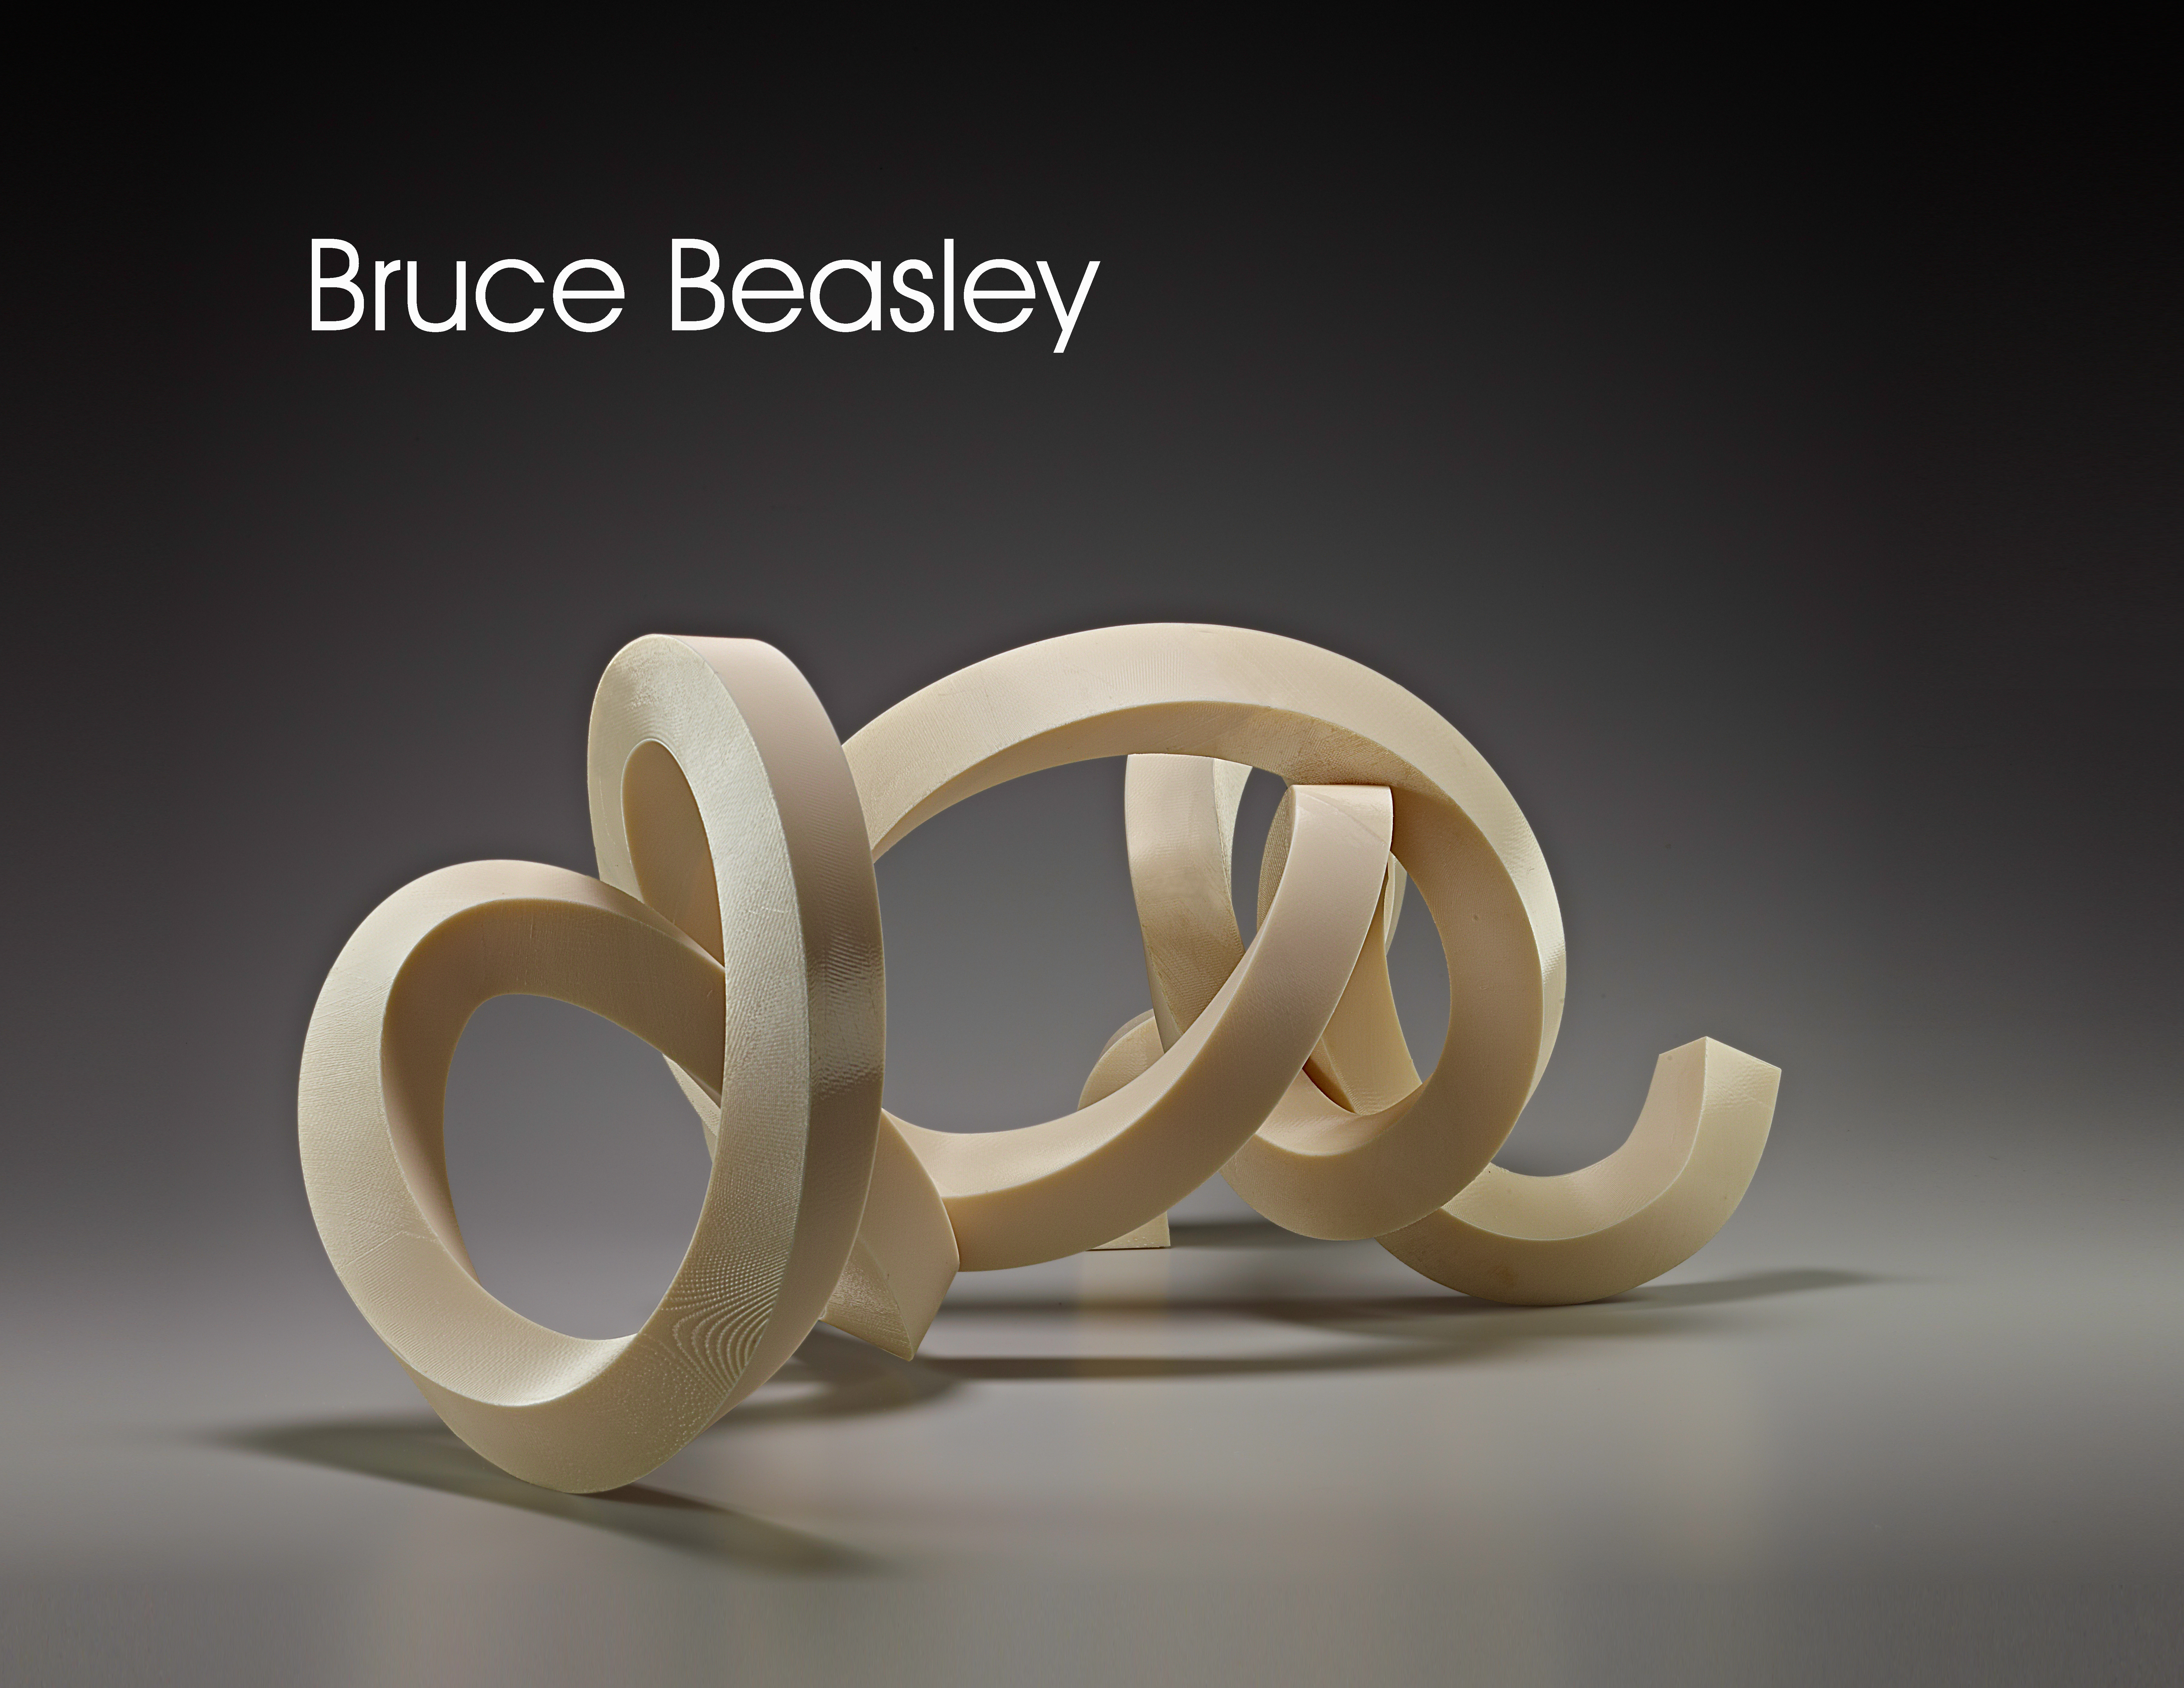 renowned sculptor bruce beasley launches coriolis, a 3d-printed art